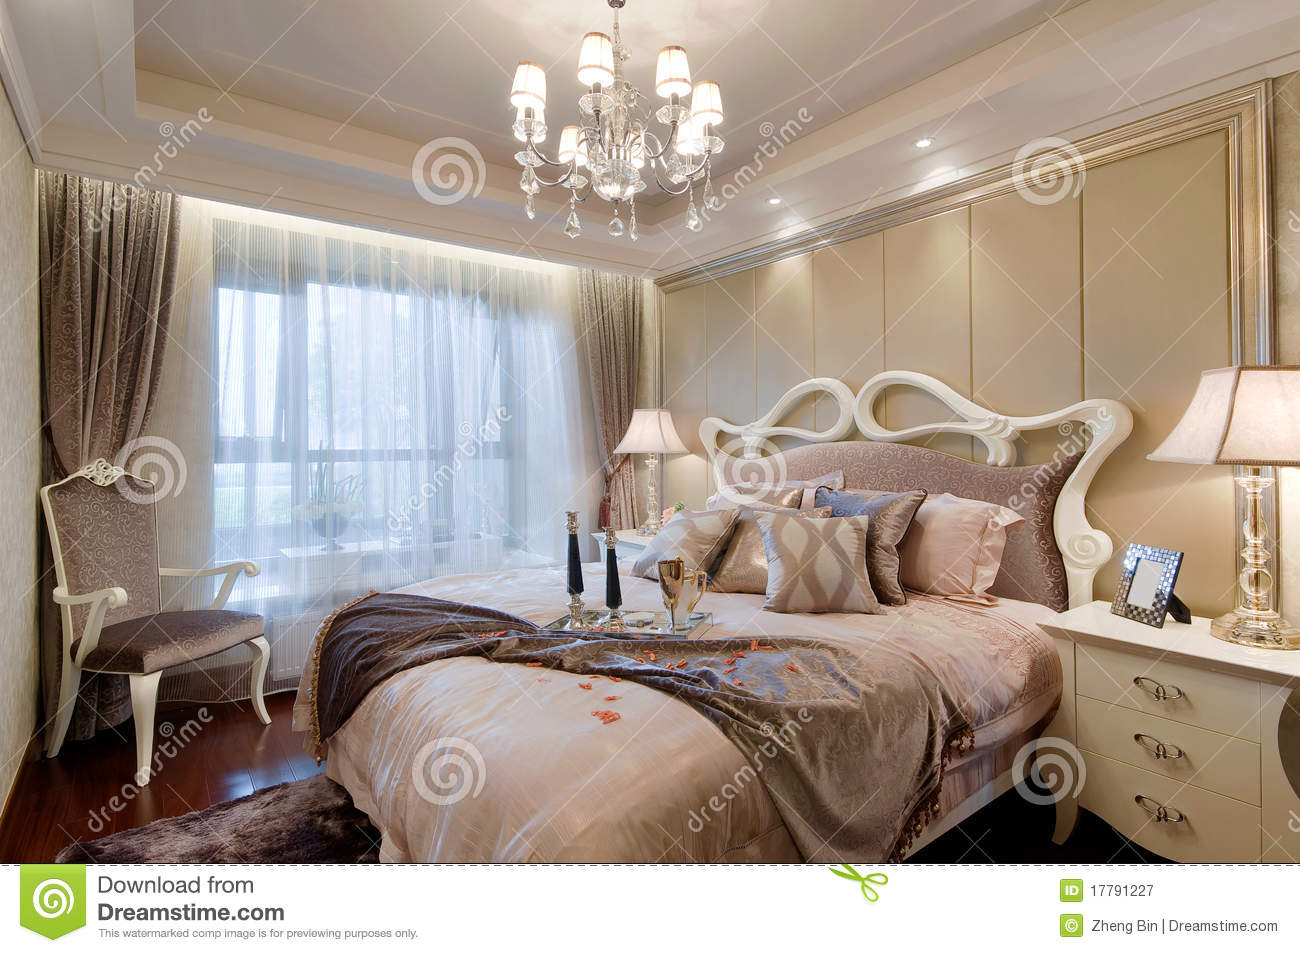 Bedroom royalty free stock photography image 17791227 - Image bed room ...